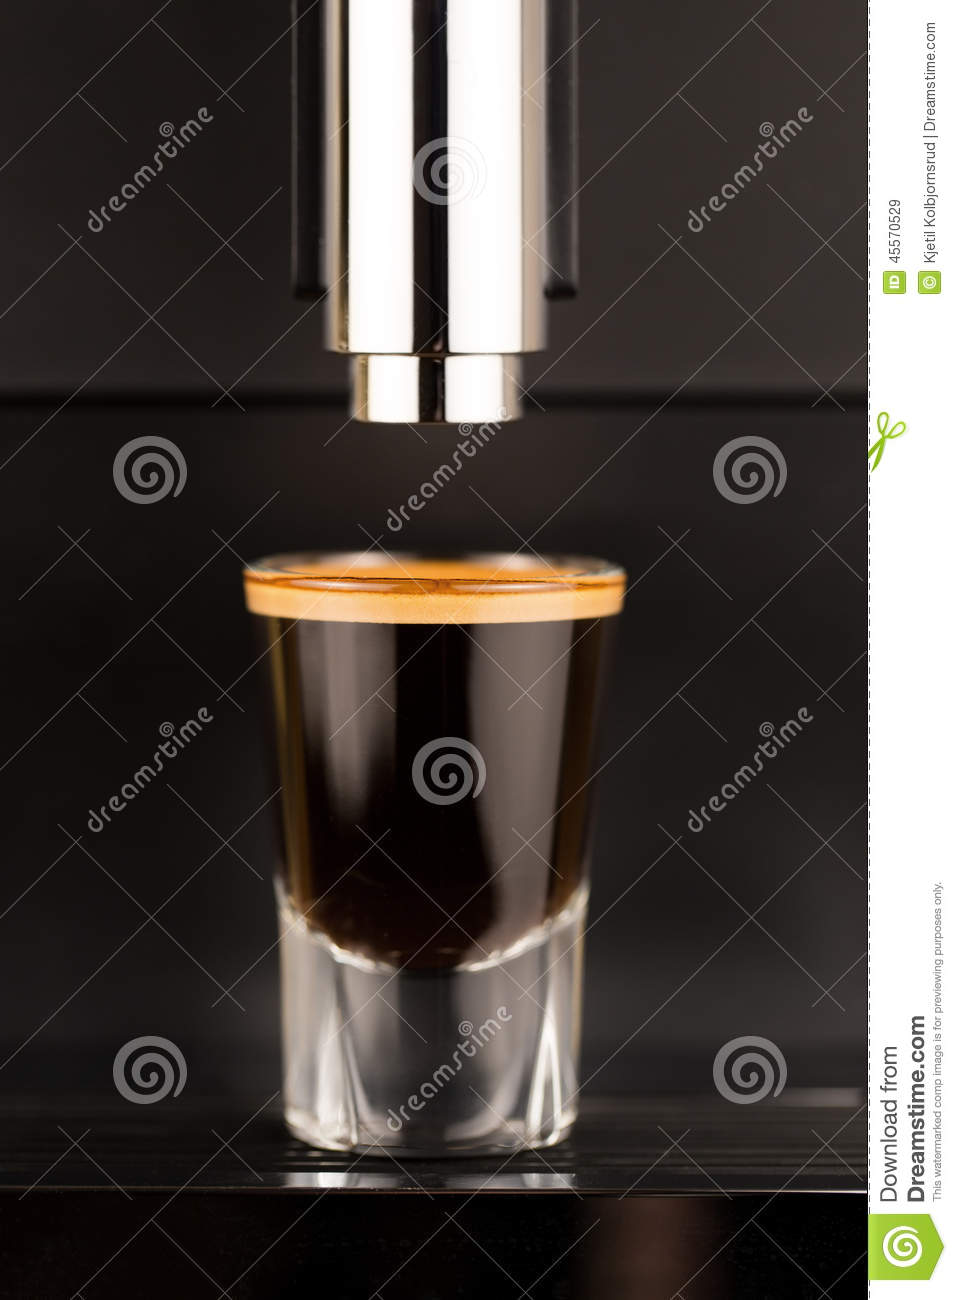 stok coffee shot how to use